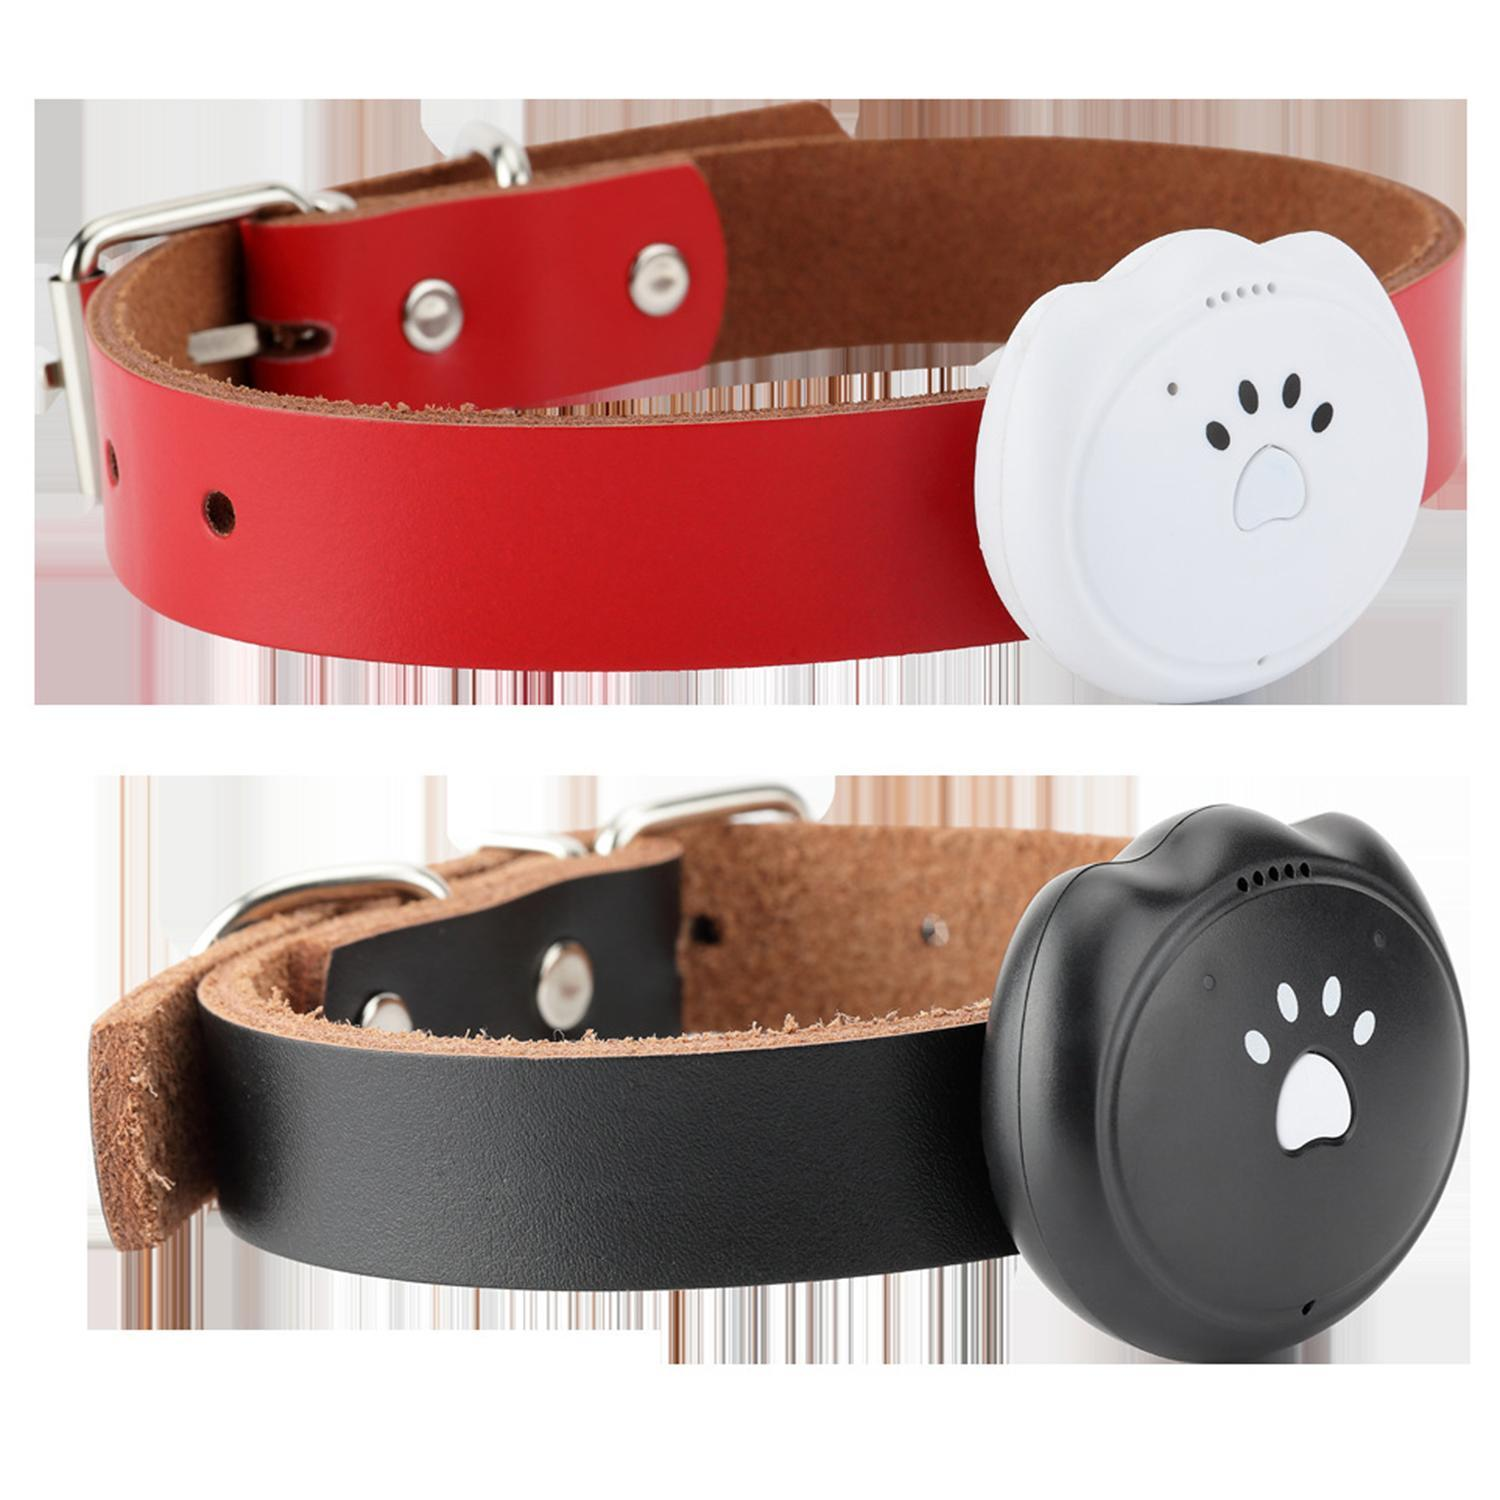 Anti-lost Dog Cat Collar GPS Pet Finder Tracker Locator GPS Mini pet collar easy use. Tracking Home, Store, etc image